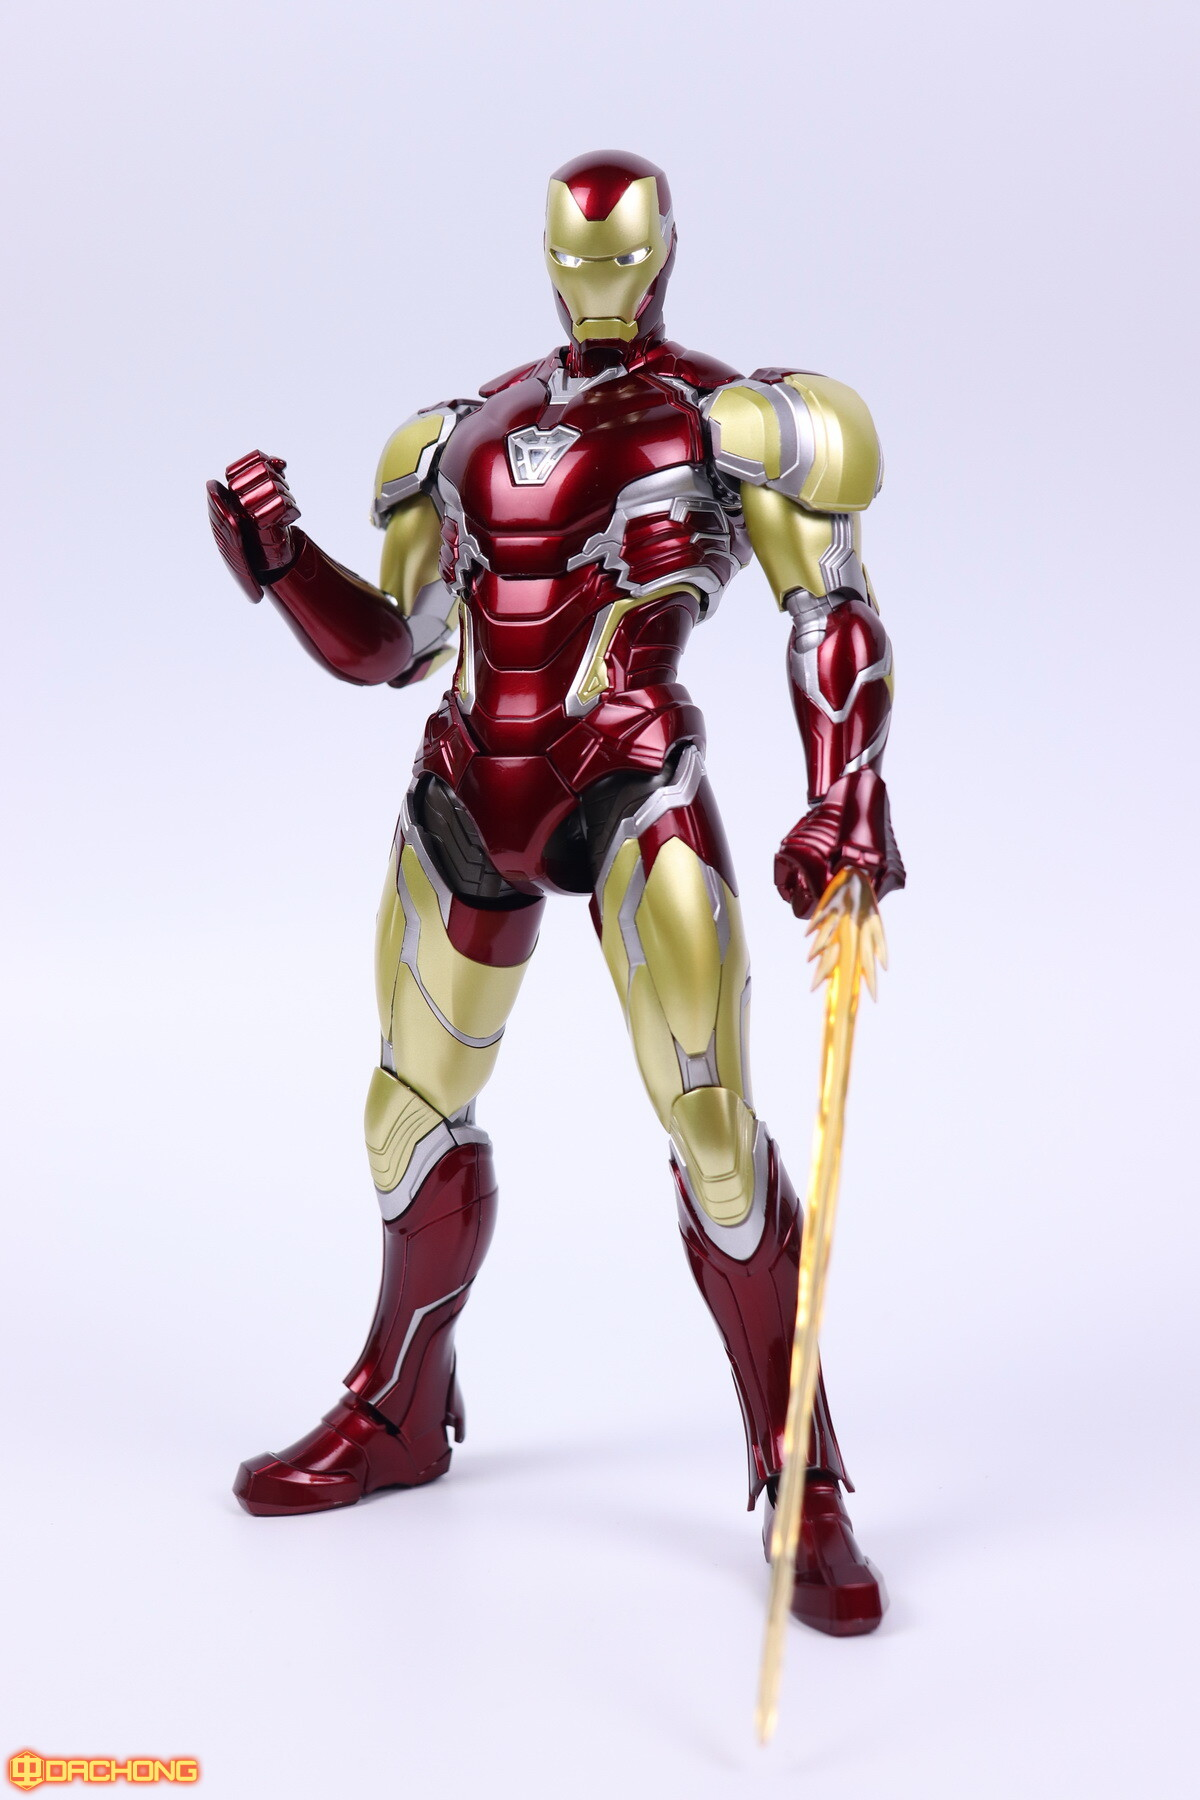 S498_2_e_model_ironman_mk85_dx_113.jpg